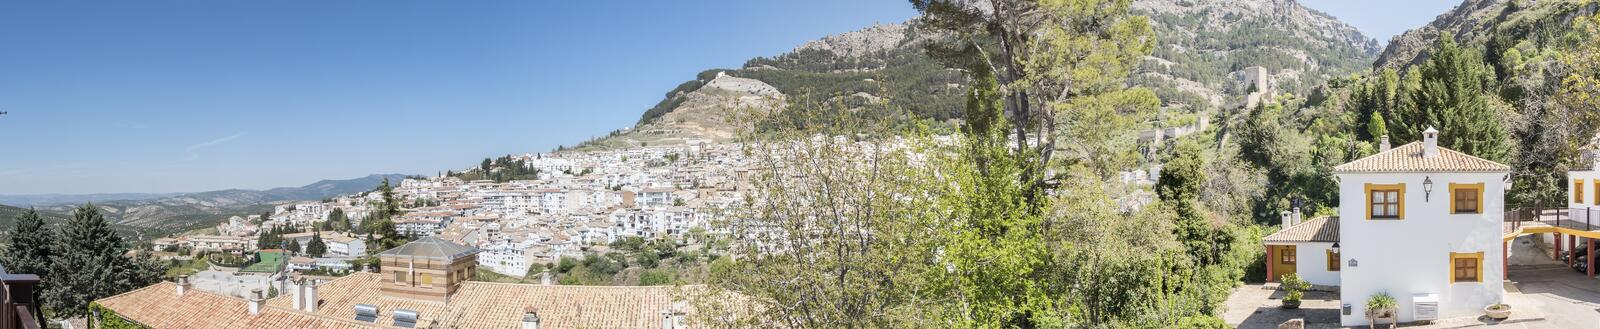 Panoramic view of Cazorla village, in the Sierra de Cazorla, Jaen, Spain royalty free stock photography